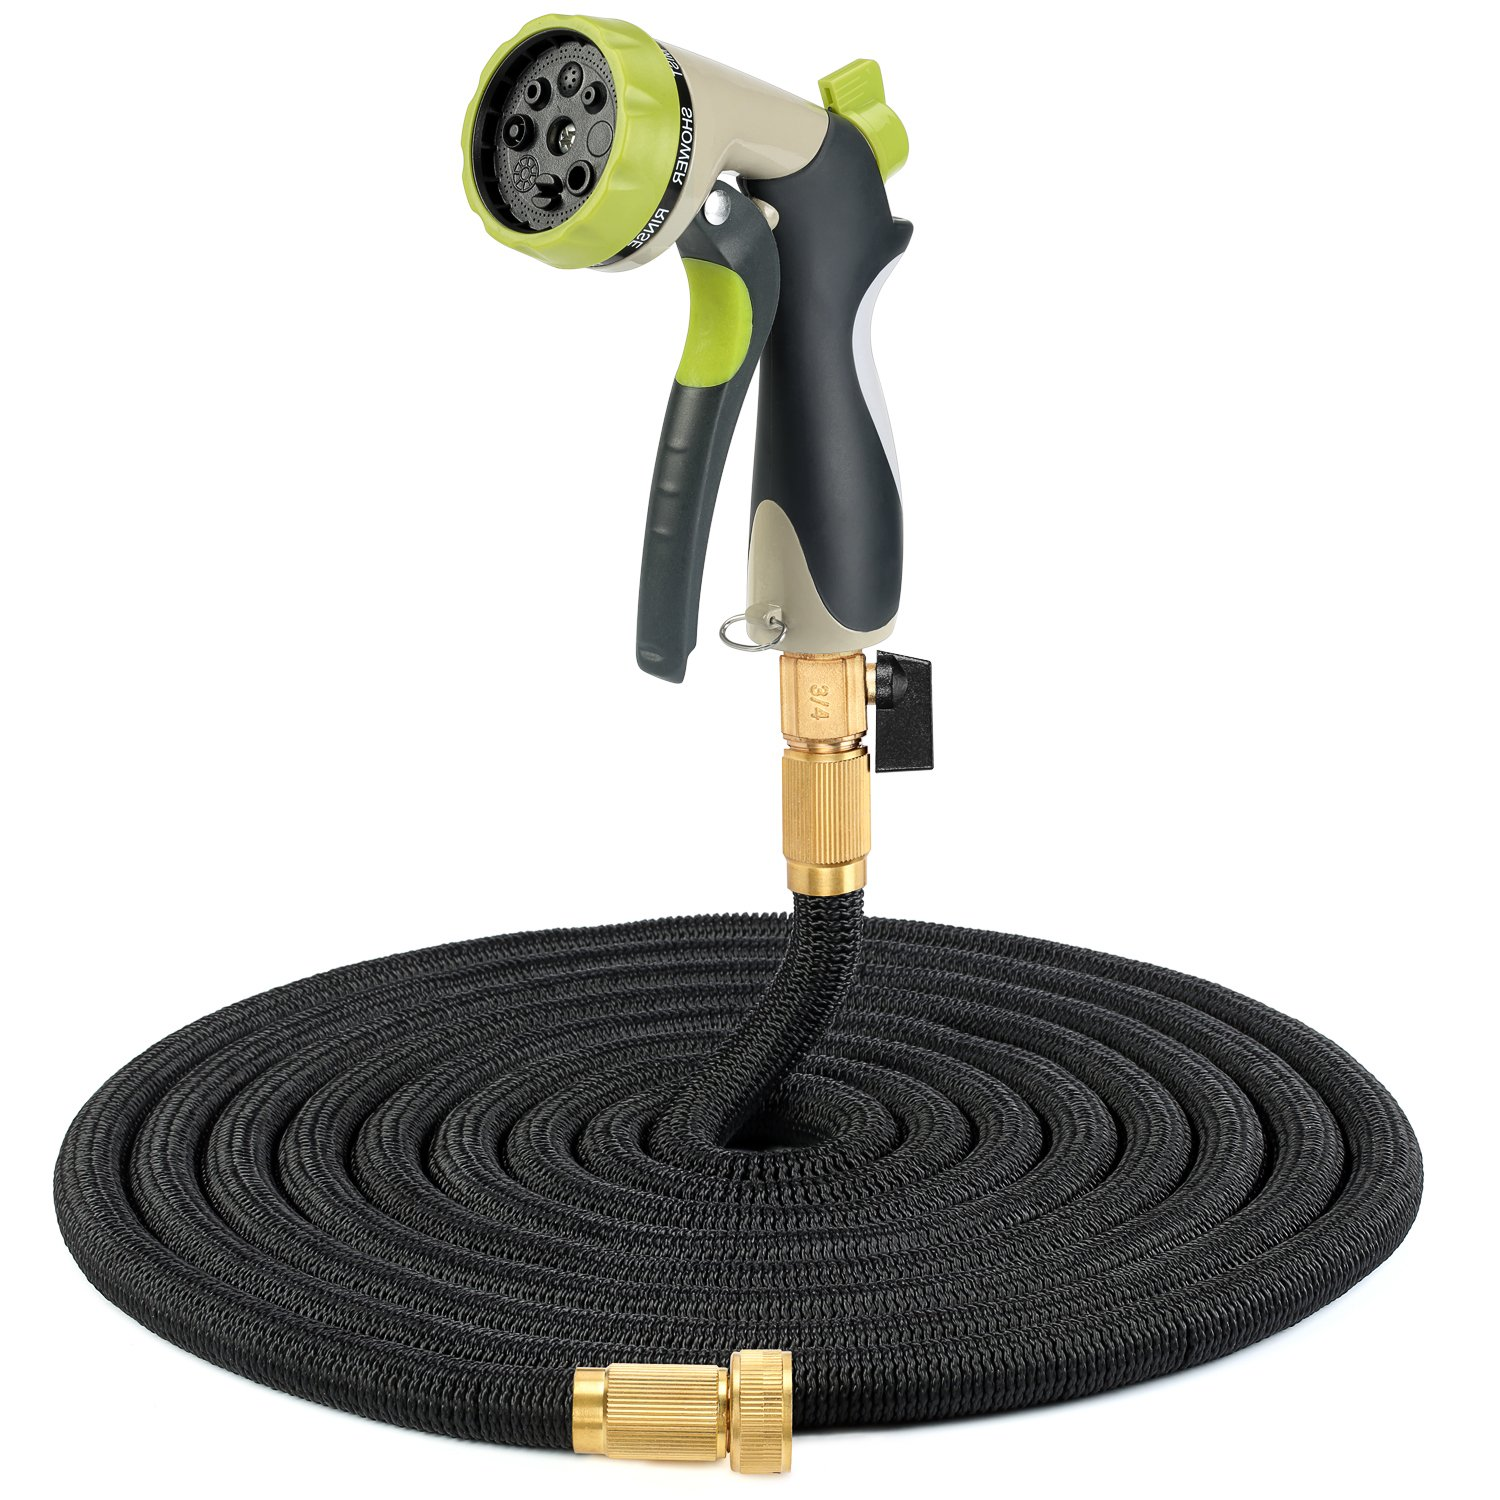 Garden Hose, Fivanus 50ft Portable Flexible Expandable Water Hose with 8 Pattern Spray Nozzle with Double Latex Core, Solid Brass Connector and Extra Strength Fabric for Car Garden Hose Nozzle, Free Storage Bag